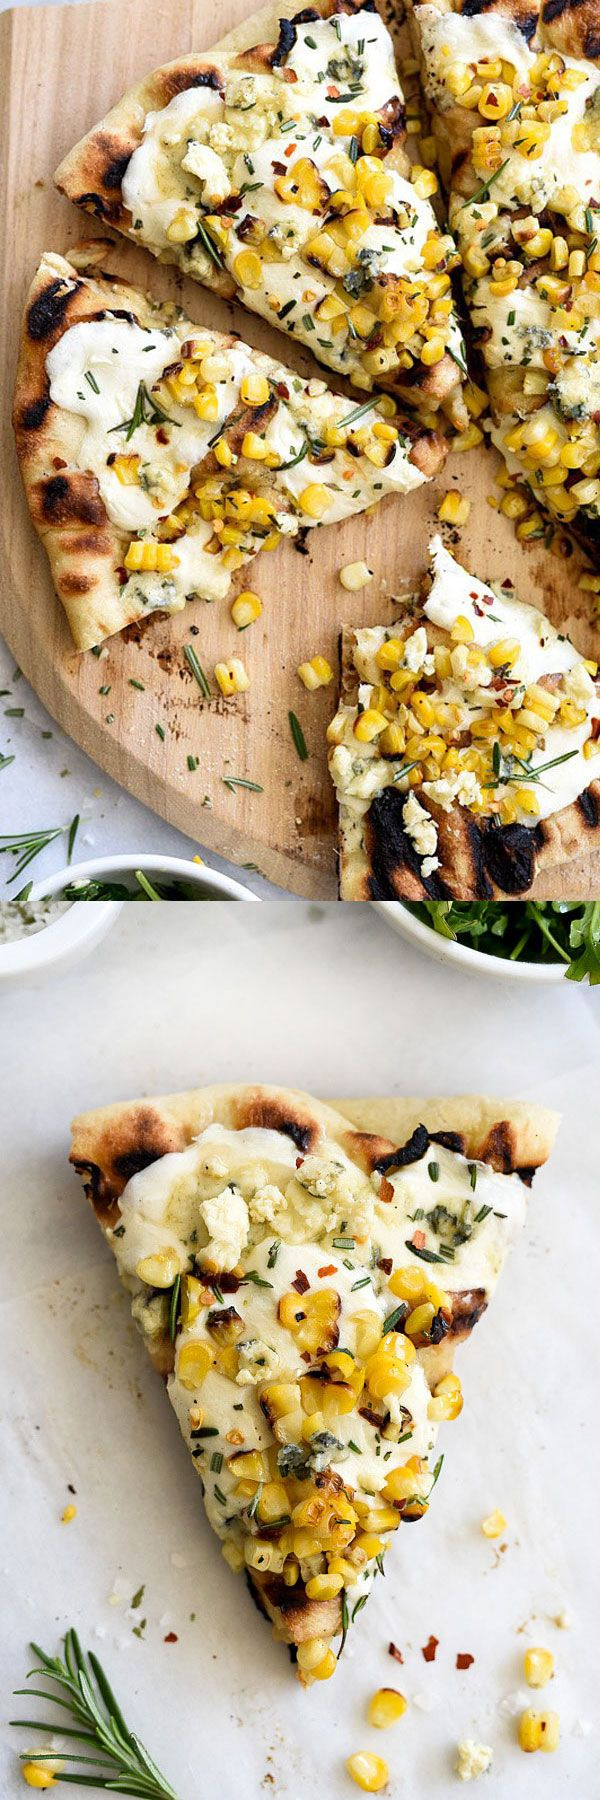 Baking pizza on the grill makes it taste just like the one from my favorite pizzaria | foodiecrush.com